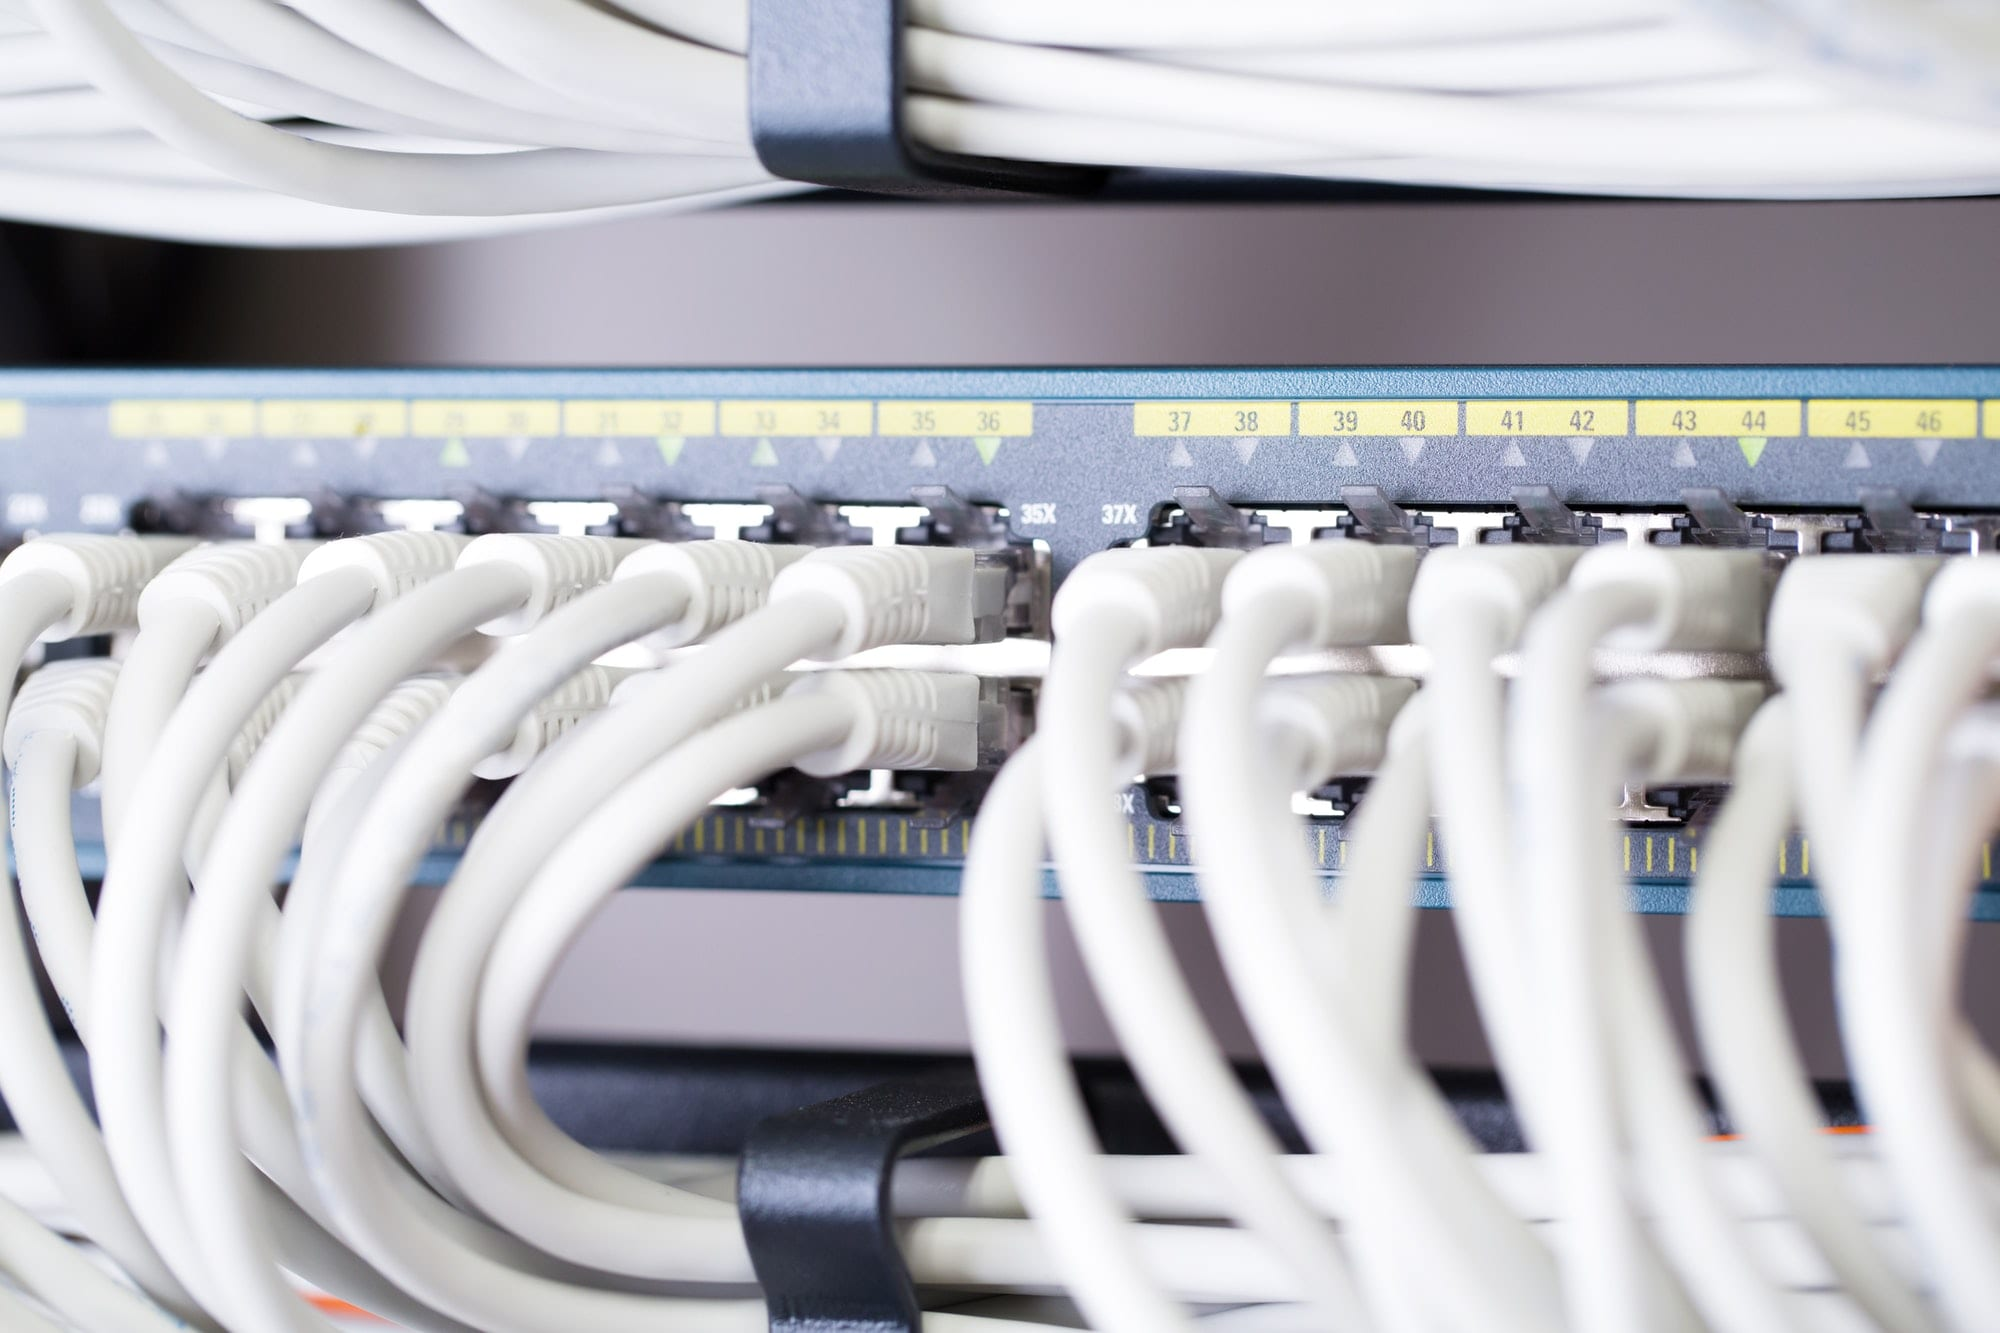 Fast Gigabit Ethnernet network switch in datacenter